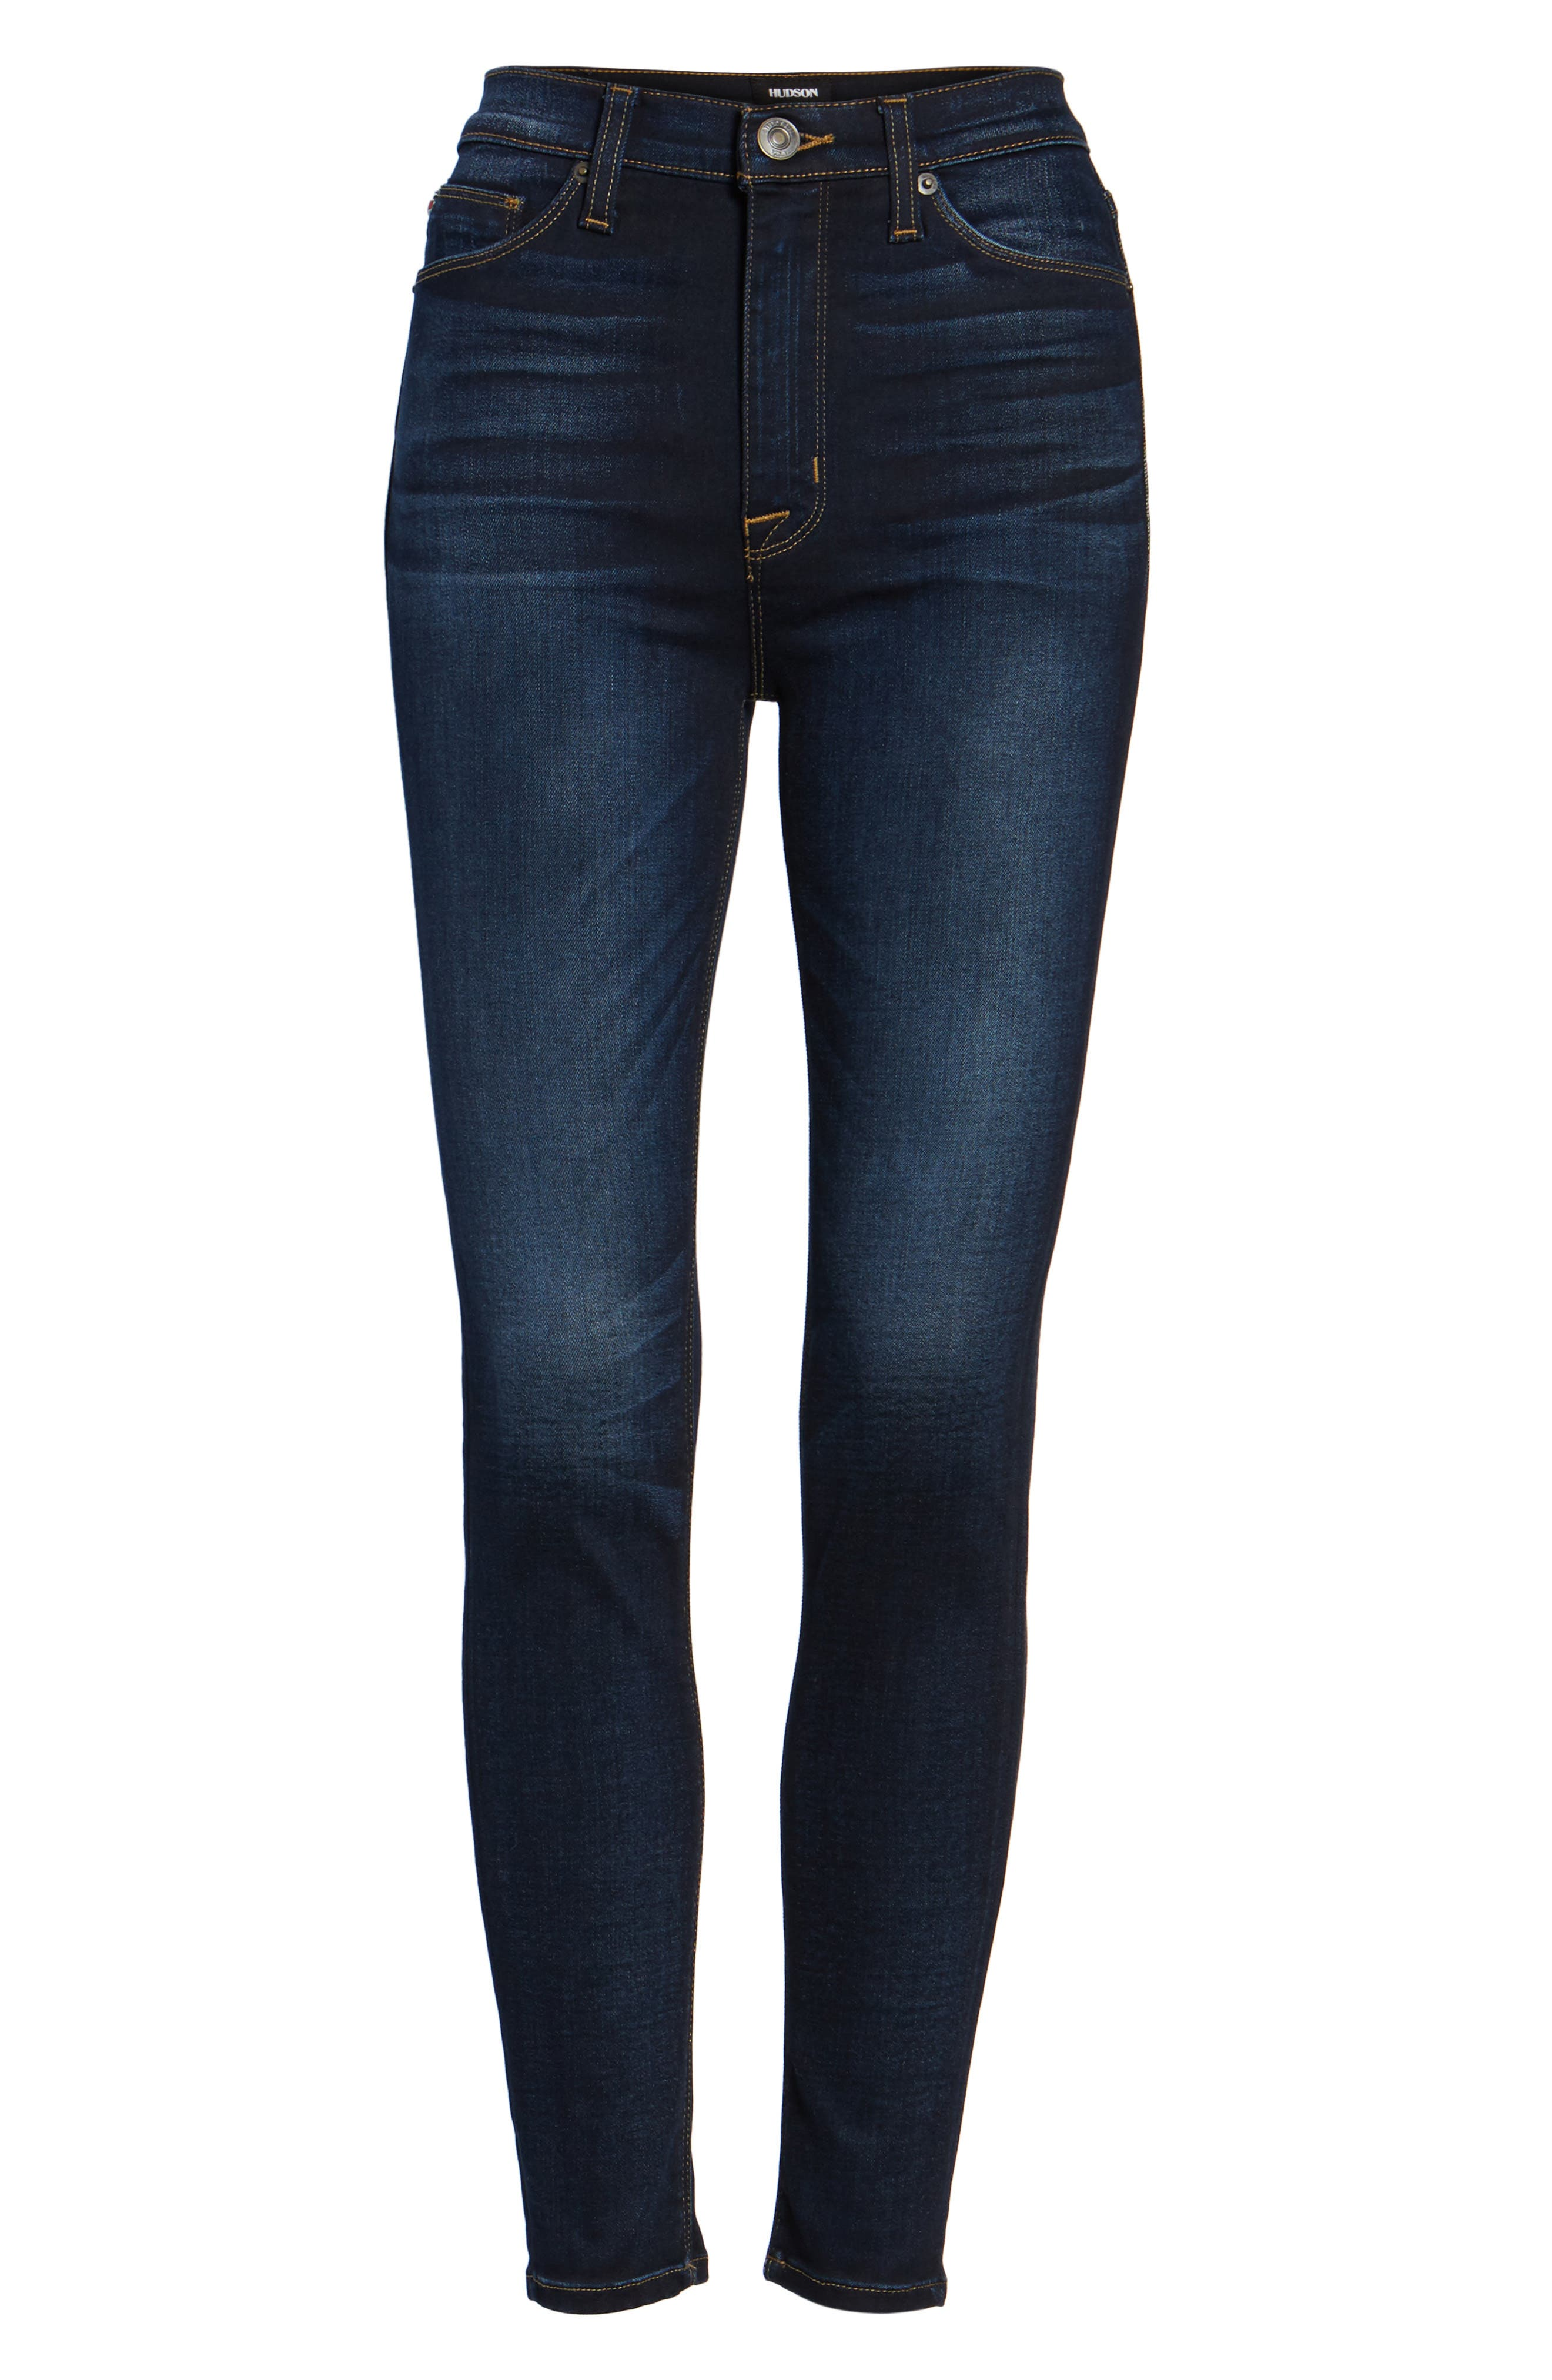 Barbara High Waist Super Skinny Jeans,                             Alternate thumbnail 6, color,                             Calvary